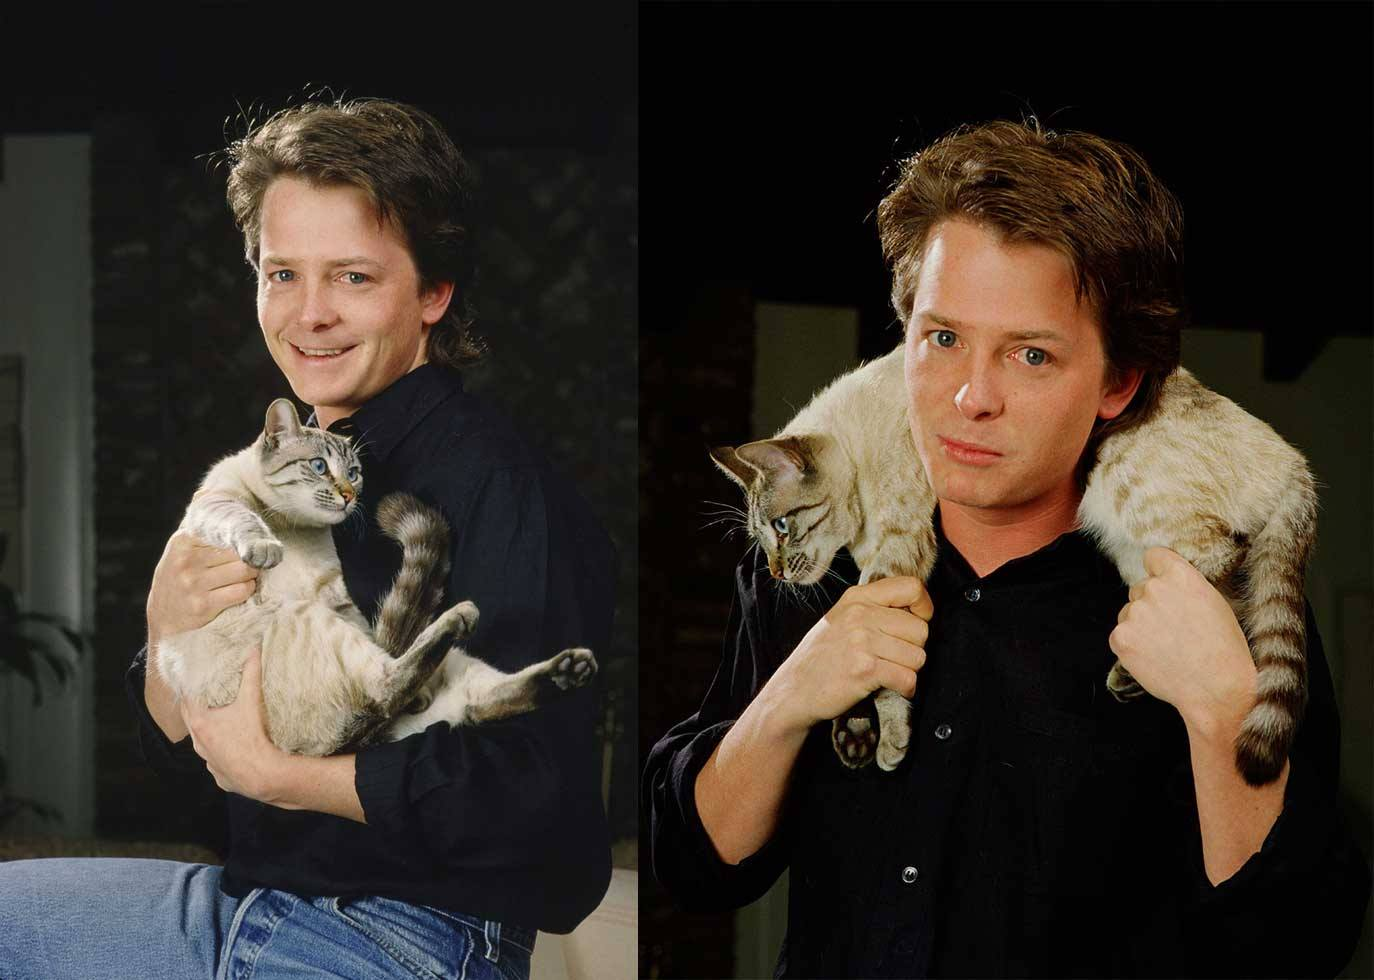 Michael J. Fox with a cat.